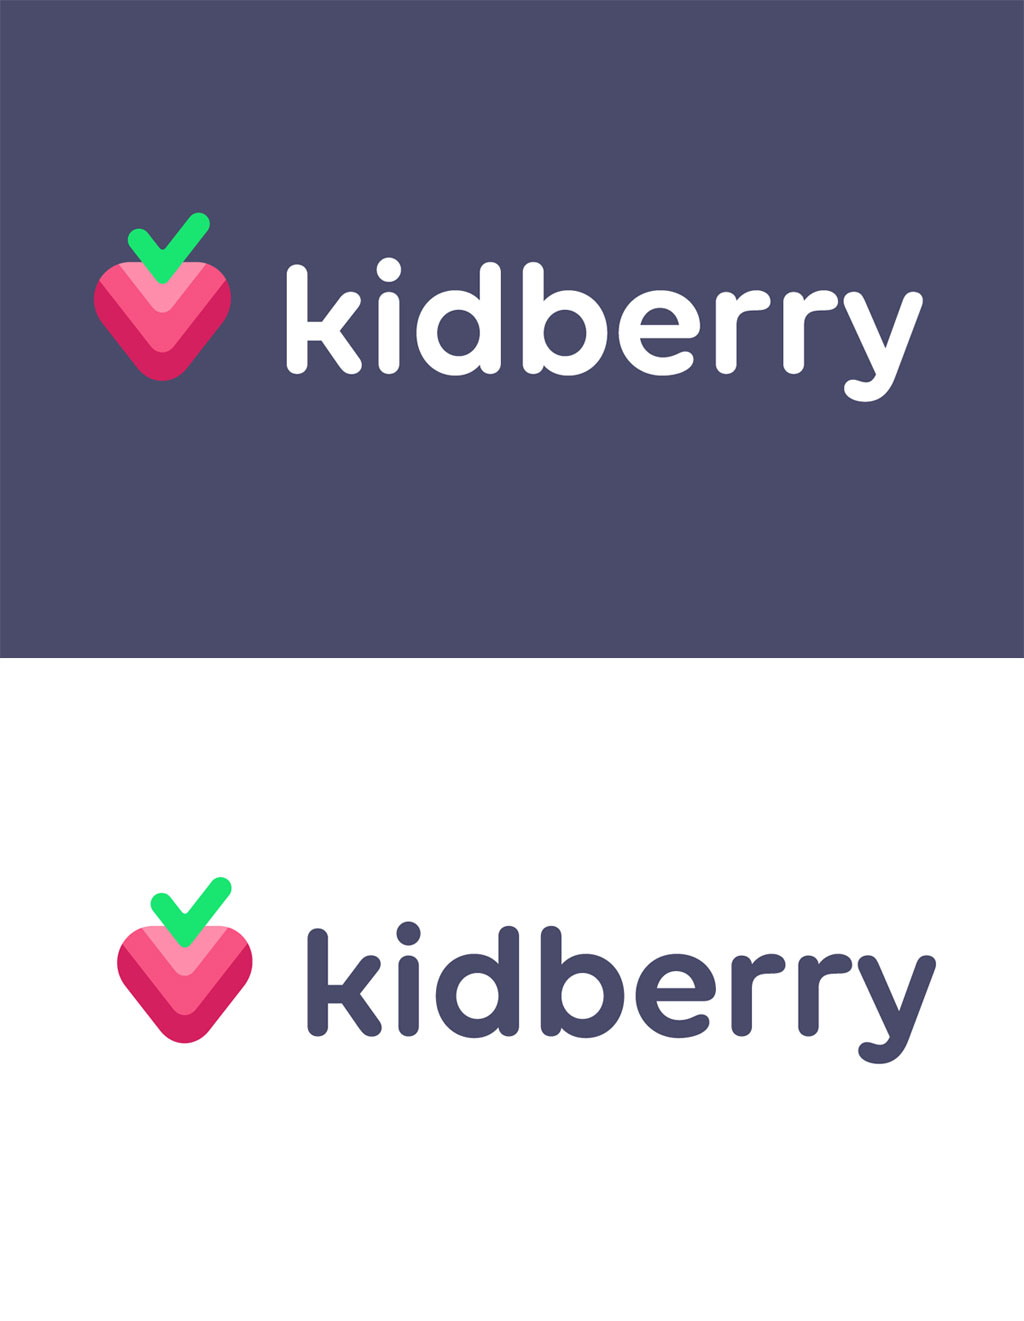 fruit logo design kidberry